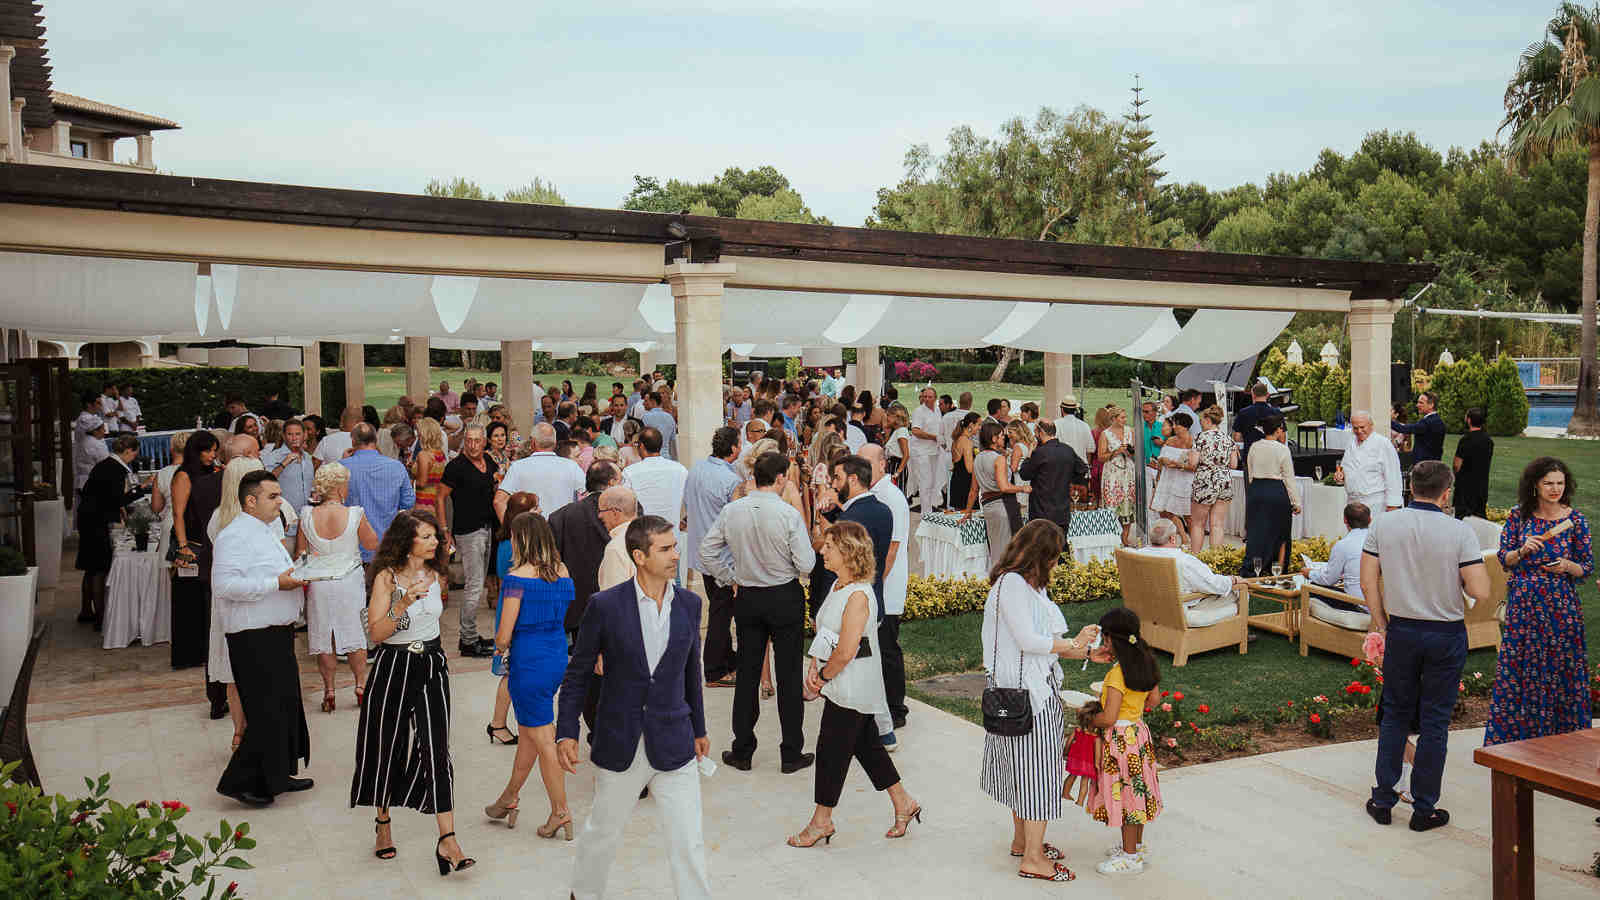 7th edition of Safari Culinary at the St. Regis Mardavall Majorca Resort